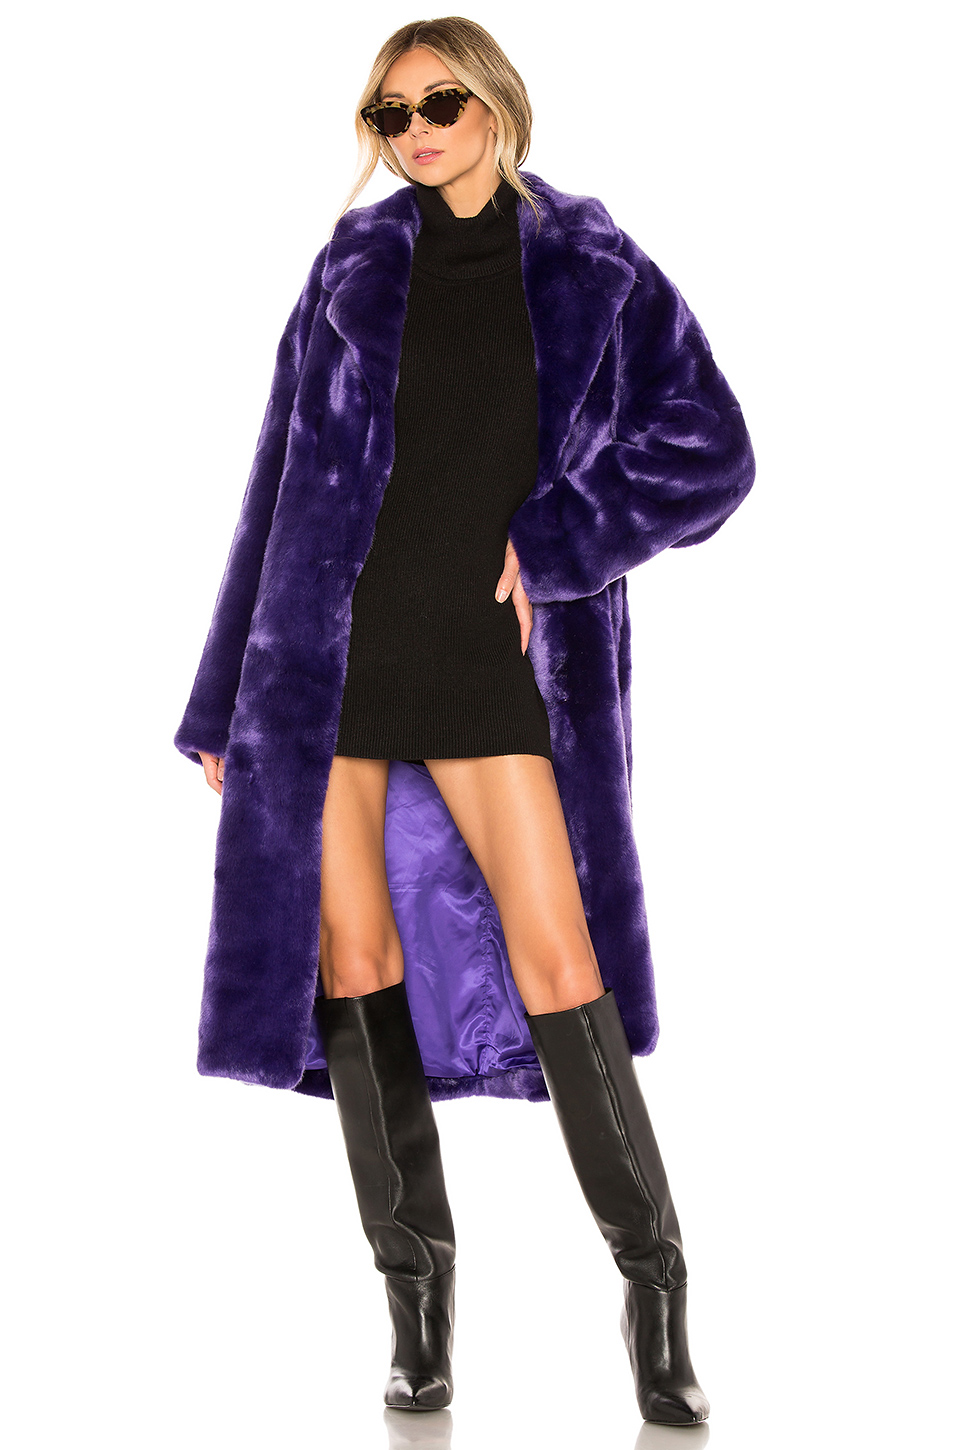 8a13a980ee26 Buy Original Tibi Luxe Faux Fur Oversized Coat at Indonesia